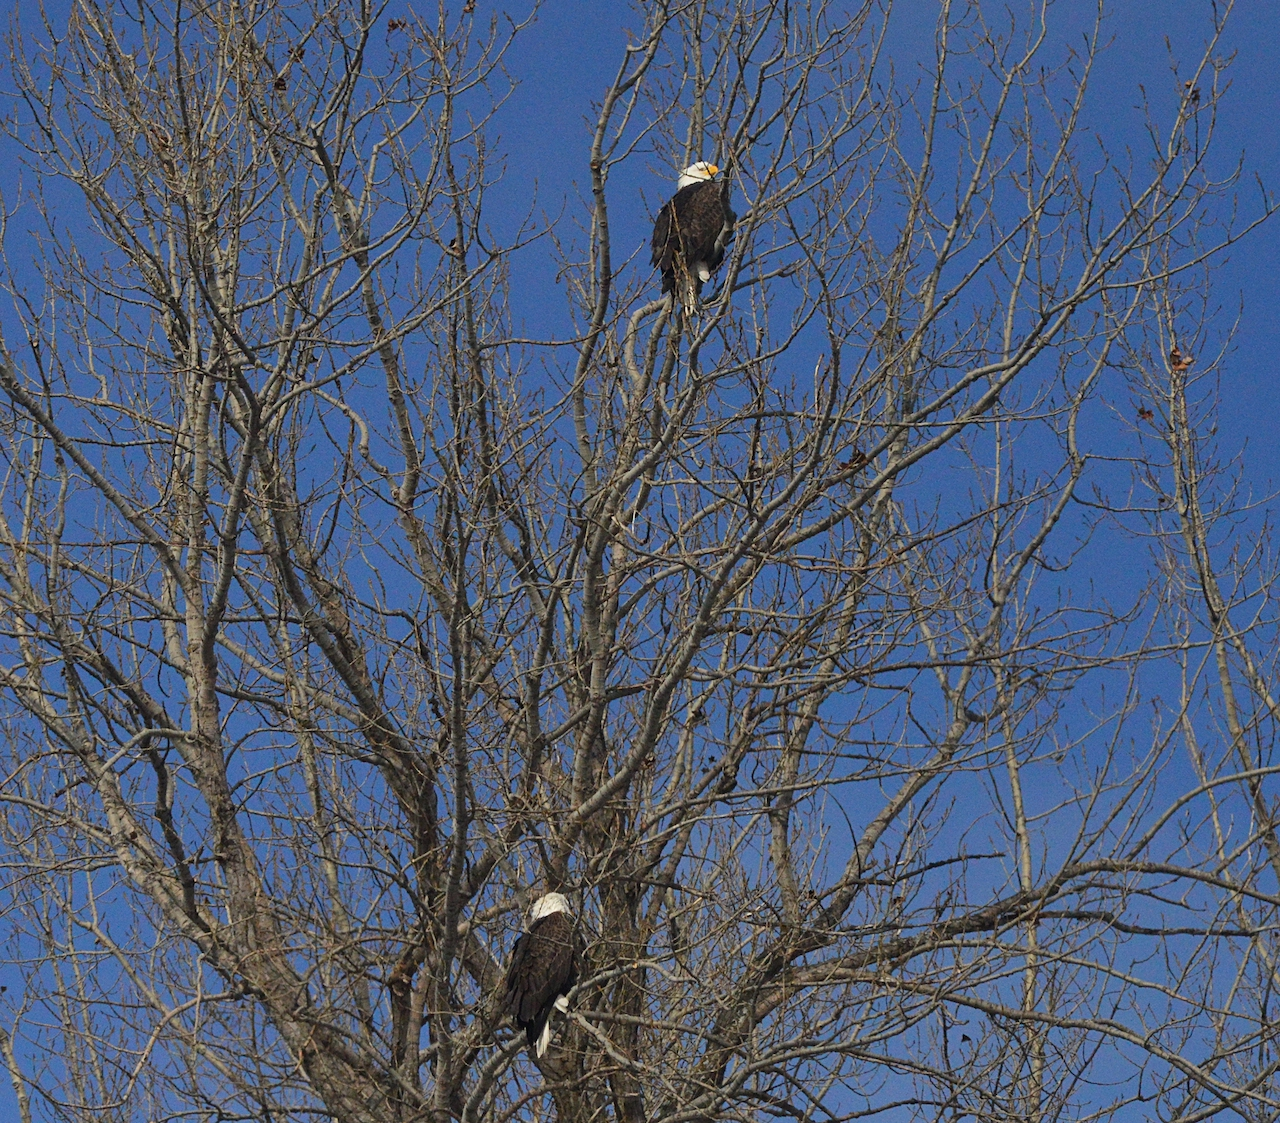 Bald eagles atop the tree (photo)